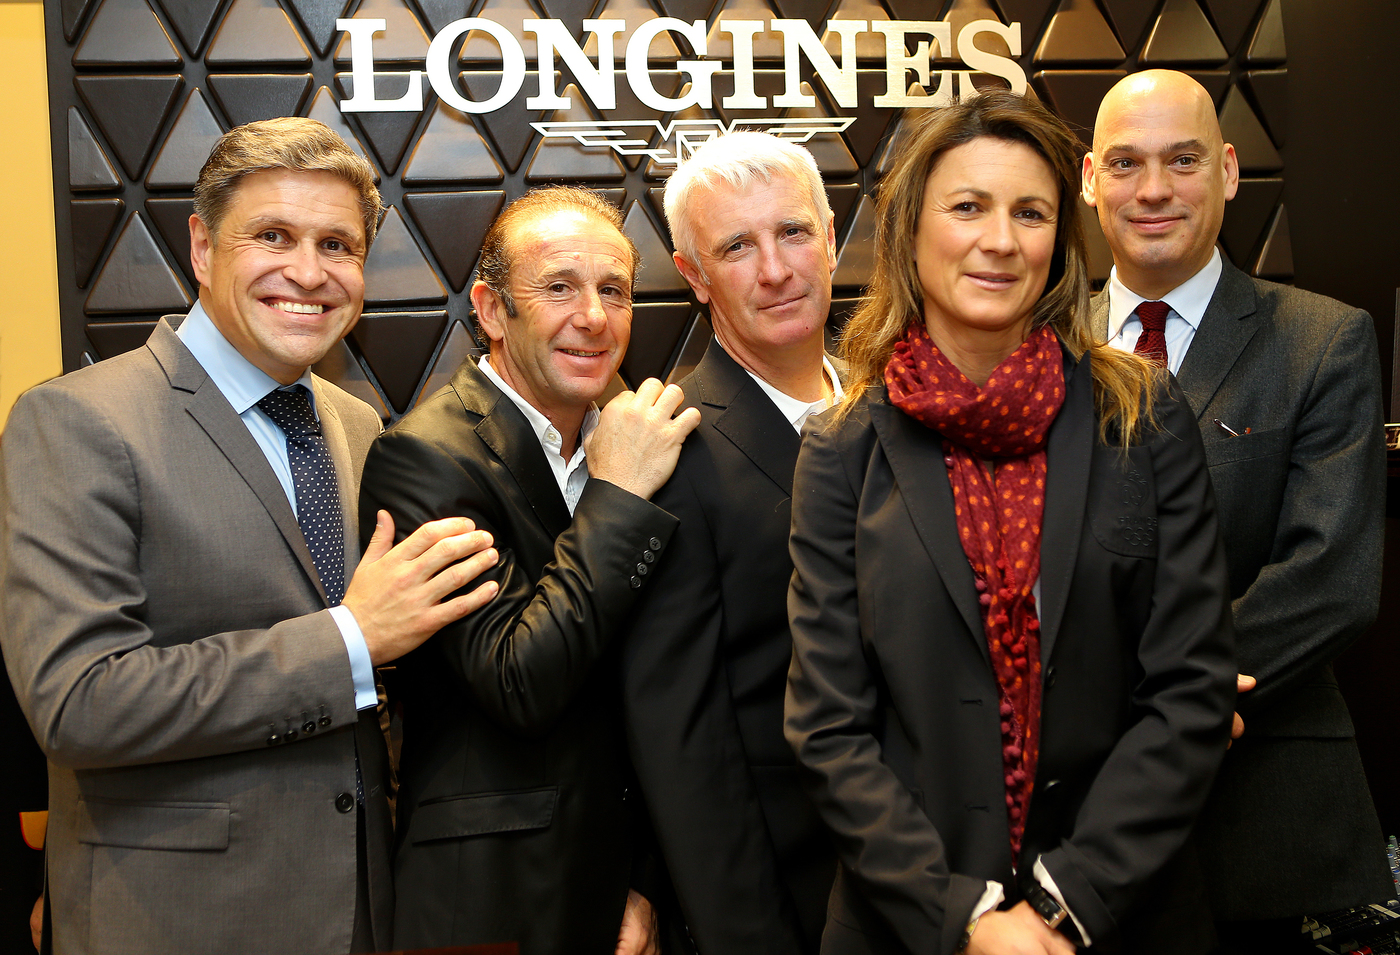 Longines Corporate Event: Longines presented its latest equestrian watch in its new Parisian boutique in the presence of show jumping champions 6